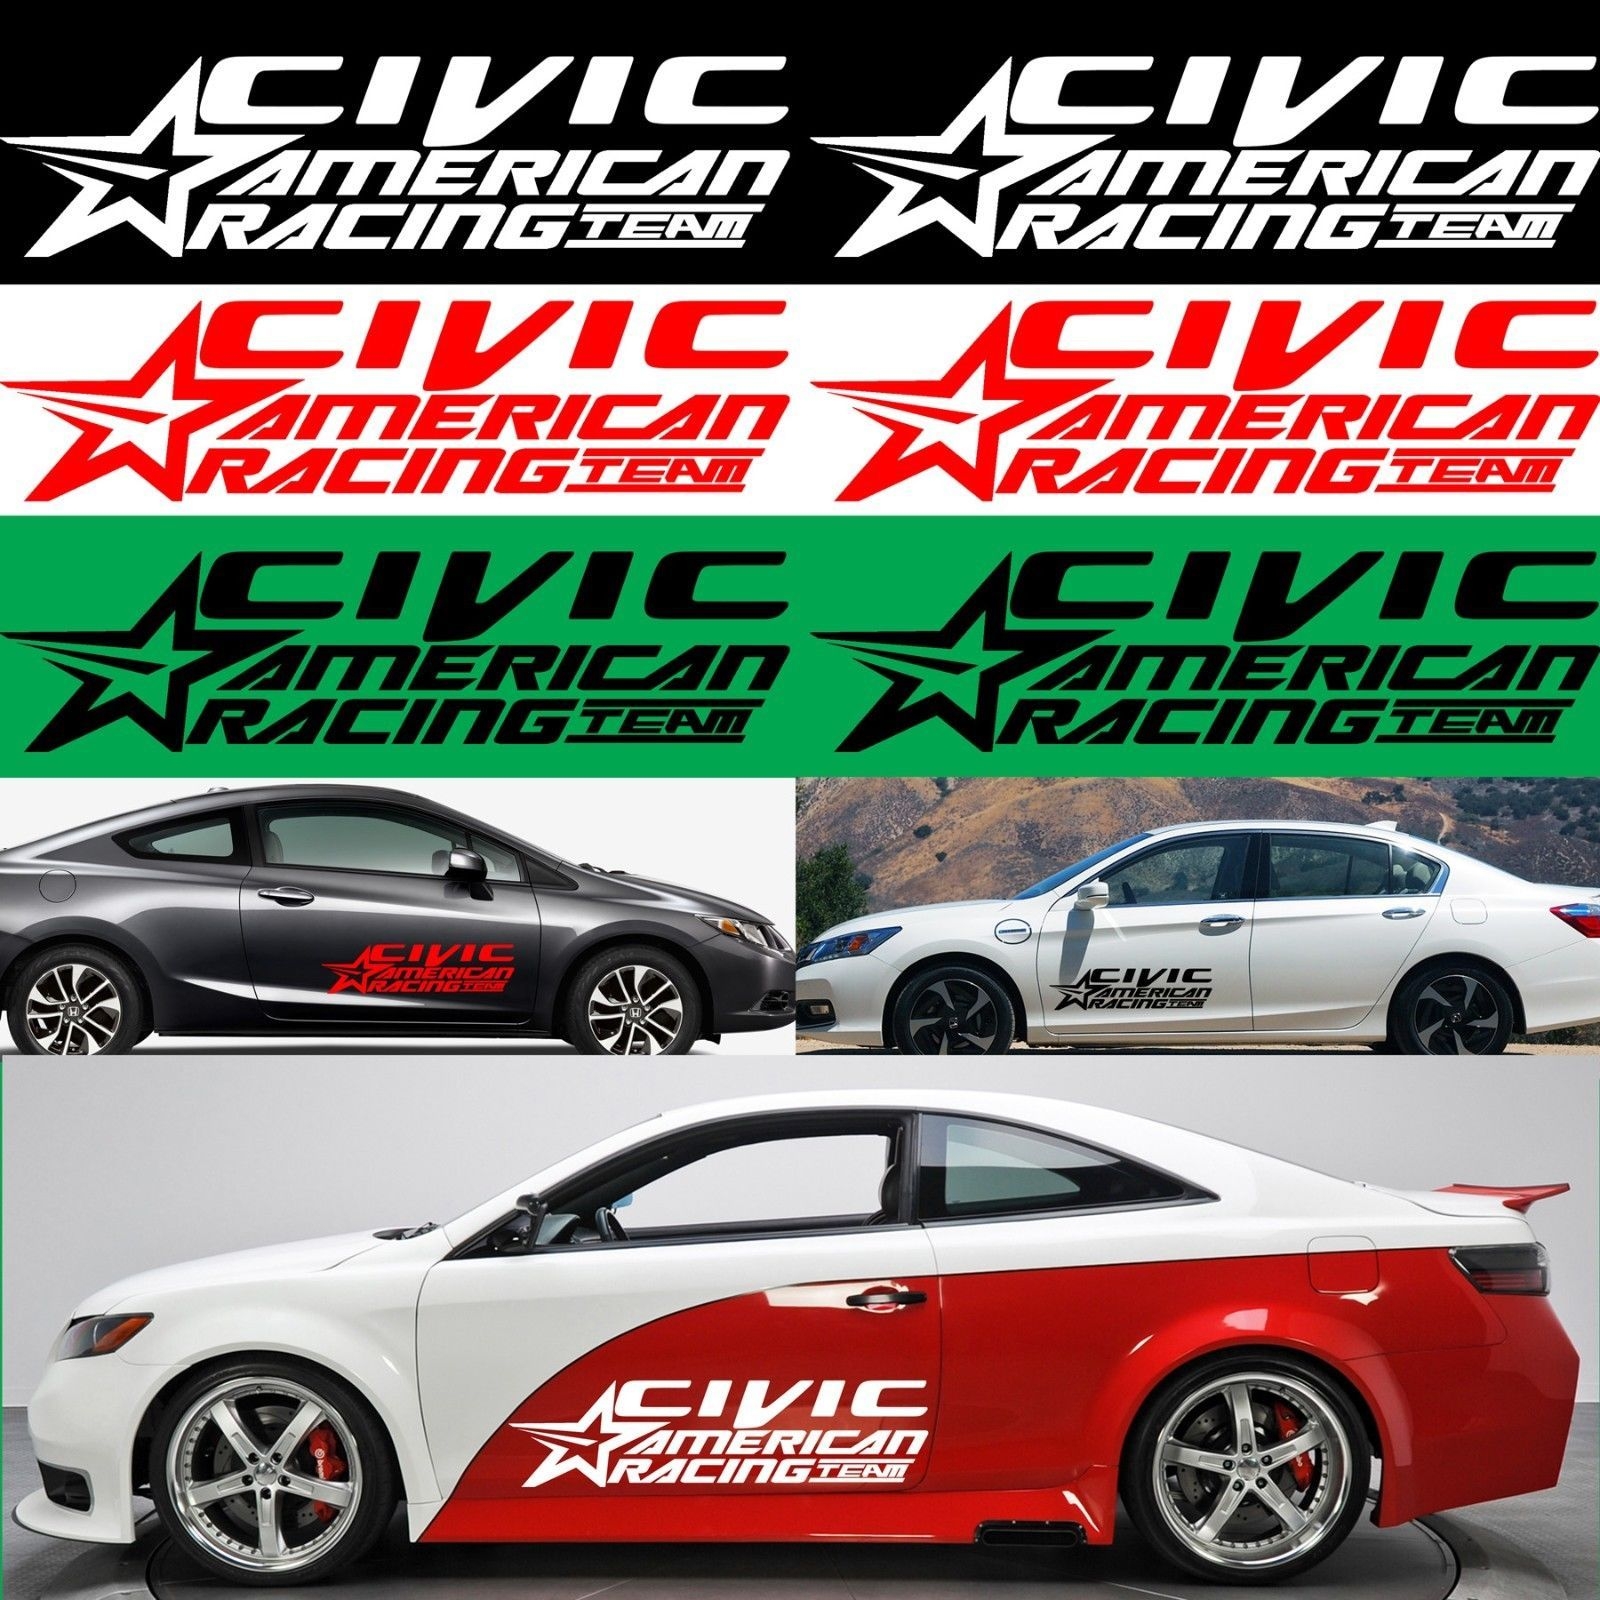 Racing team american racing car decals honda civic honda civic si